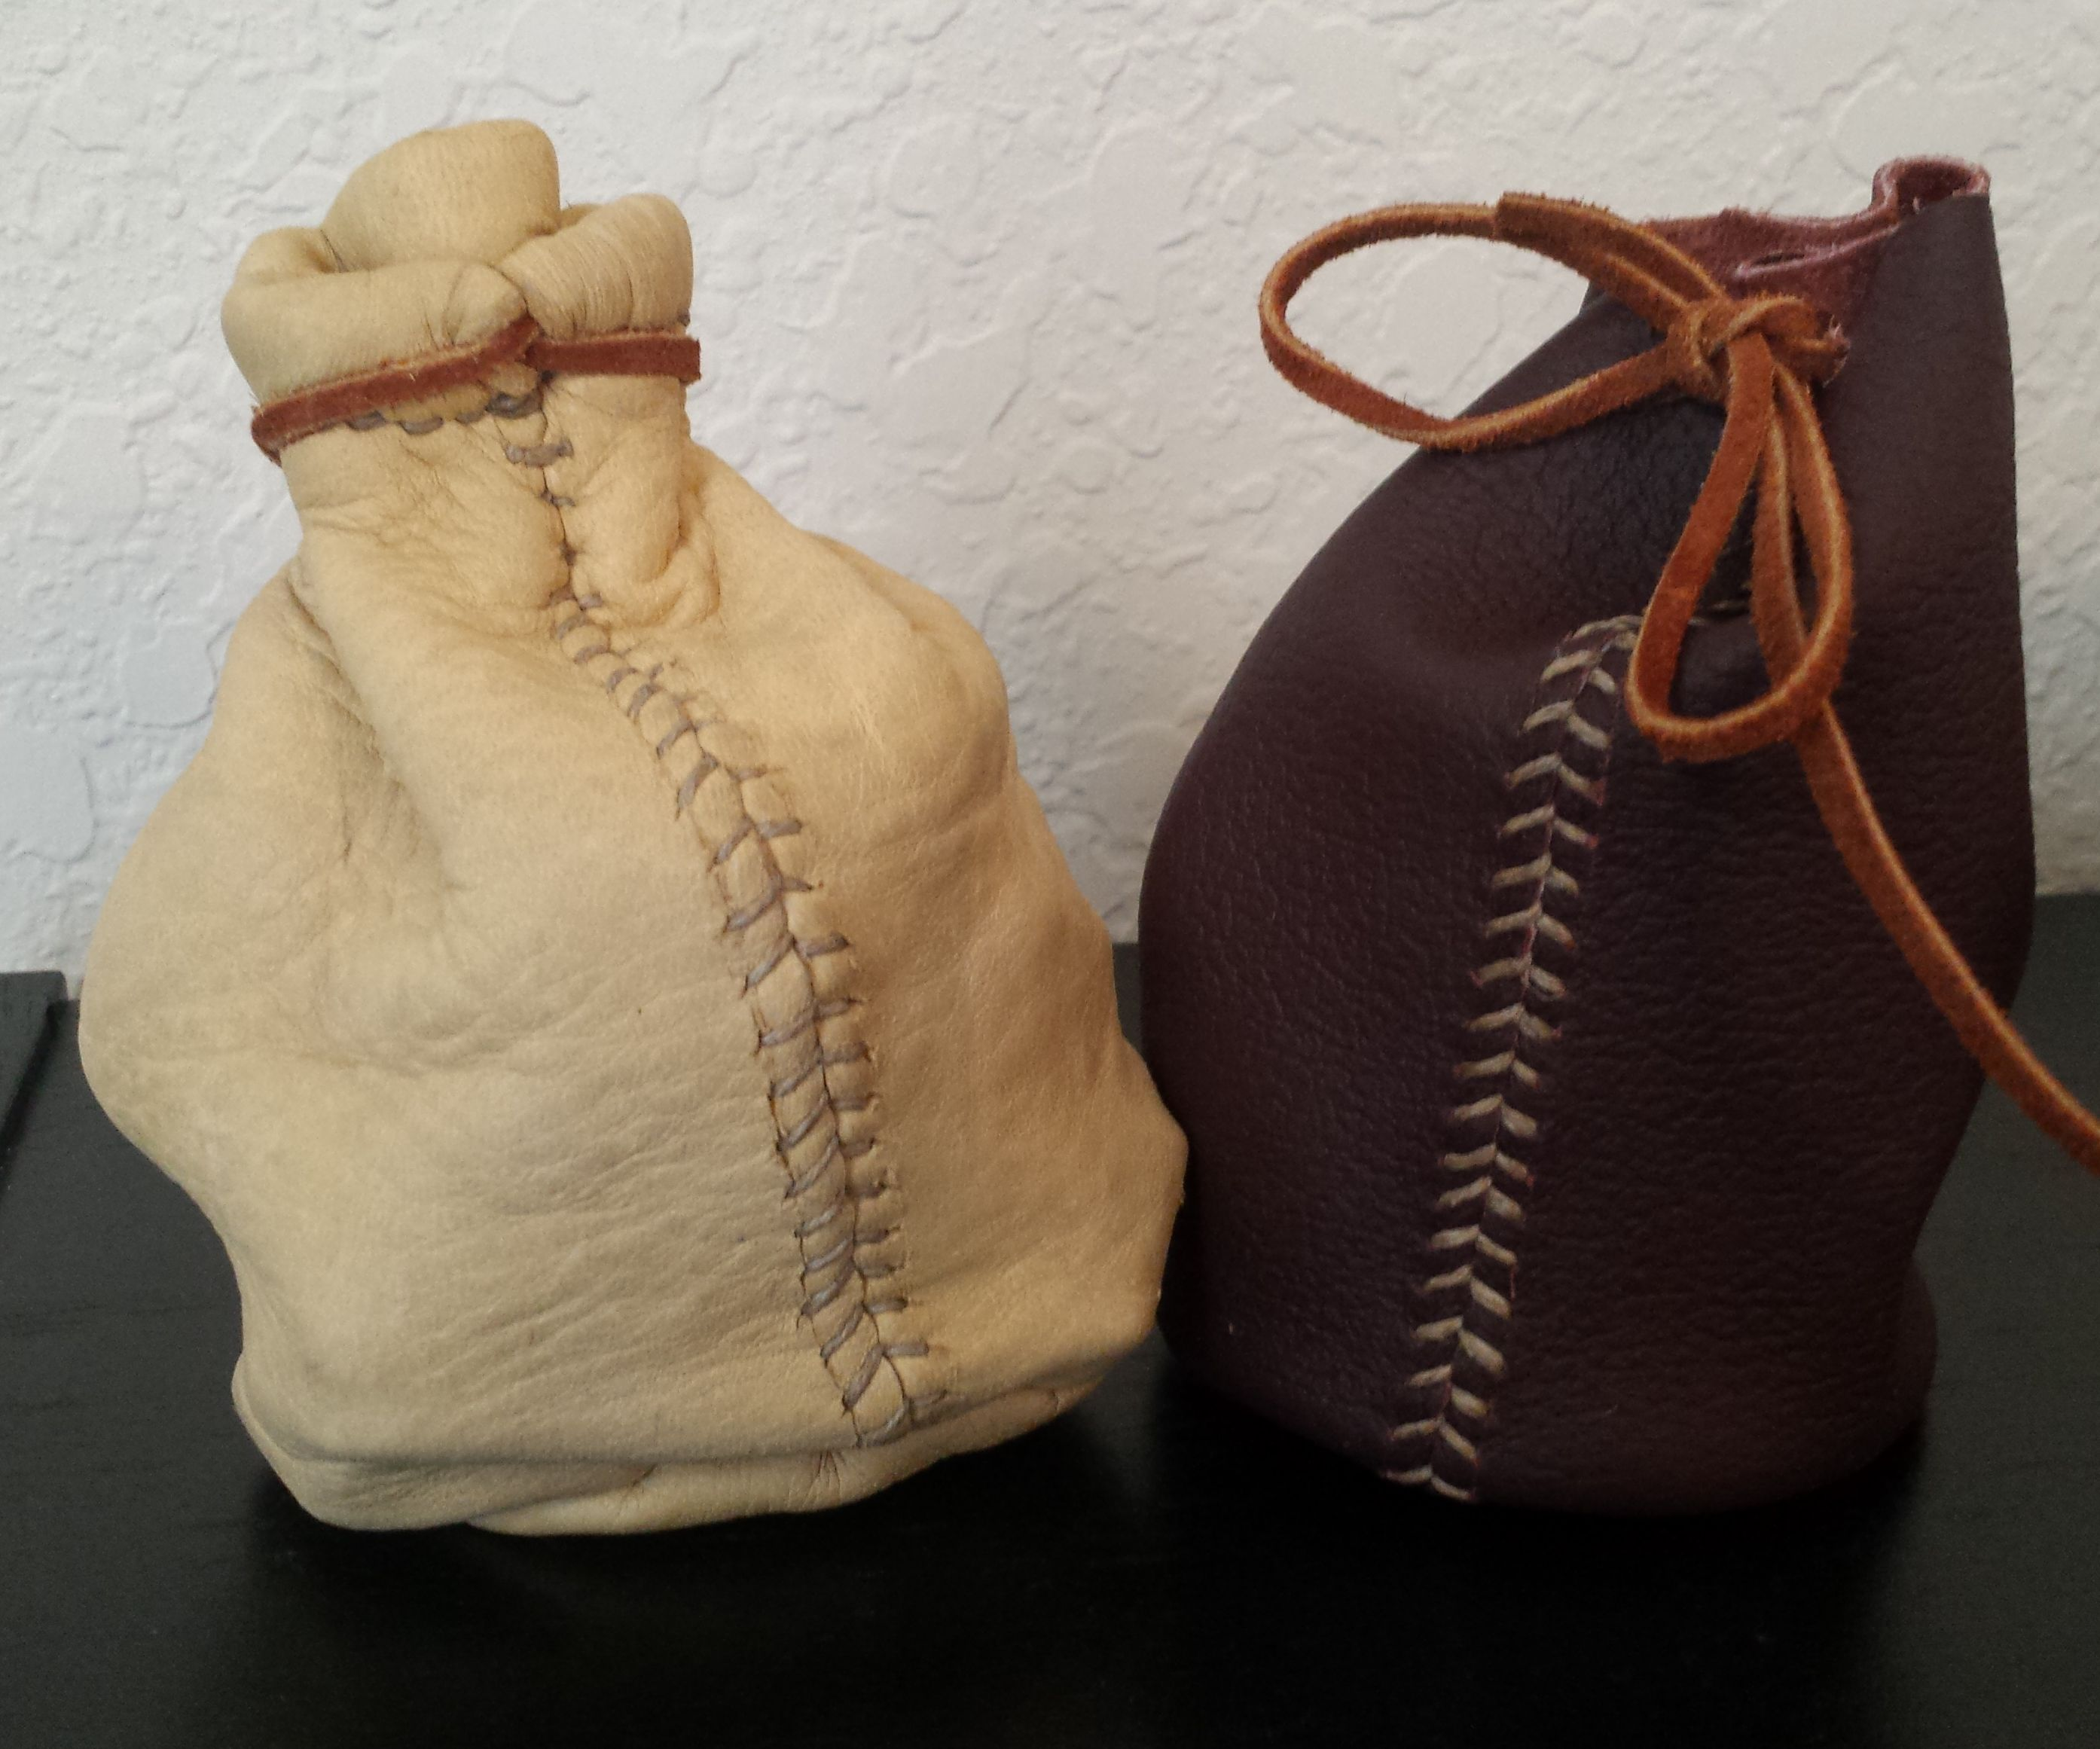 Skyrim Inspired Leather Coin Pouch/Dice Bag